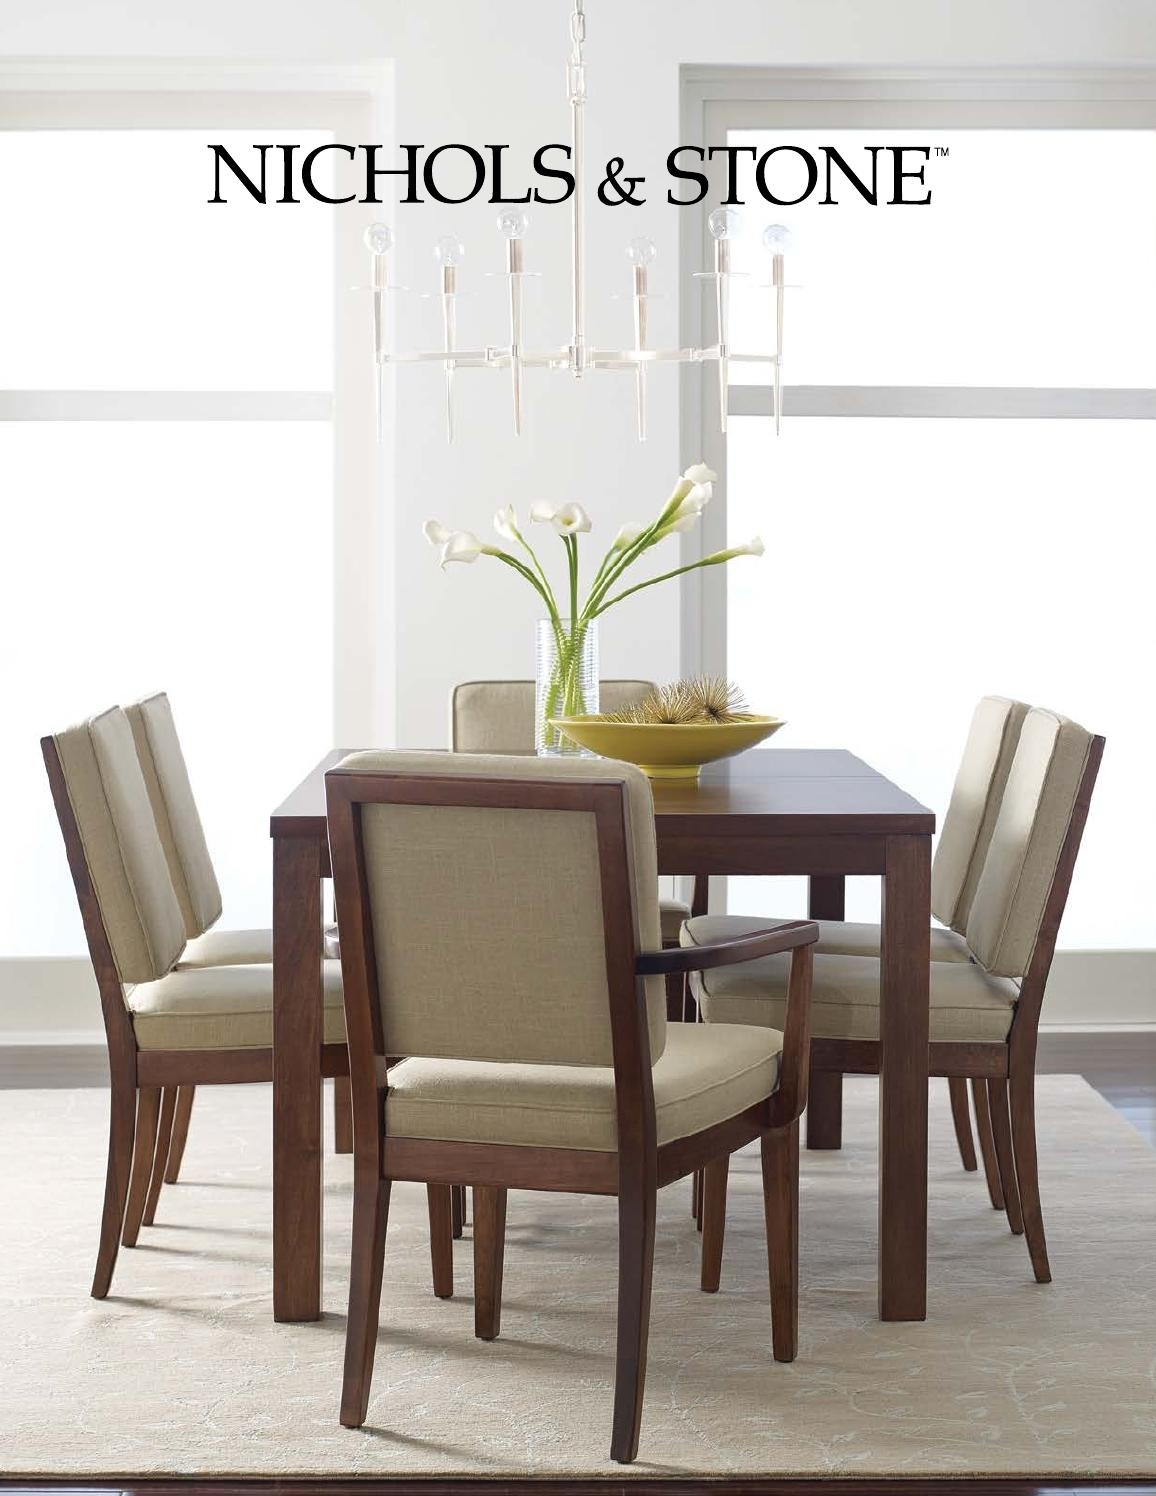 Nichols & Stone Catalogstickley – Issuu Throughout Current Walden 9 Piece Extension Dining Sets (Image 9 of 20)